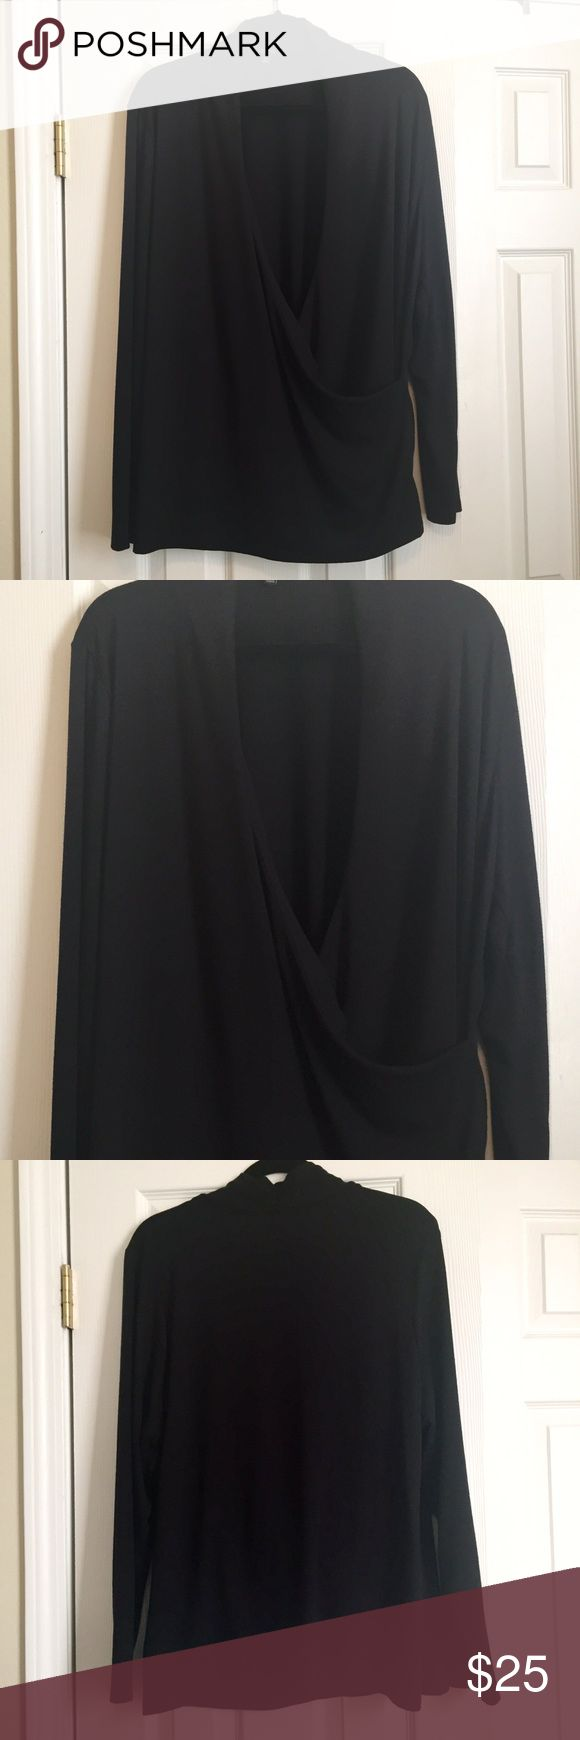 Talbots Knit Wrap Front Top Talbots long sleeve knit wrap front top. 2X. Black. Super comfy. Looks great with jeans, slacks or skirts. A great staple for any wardrobe. Worn once & realized it's too big for me. Excellent like new condition. No holes, snags, runs or other defects. Talbots Tops